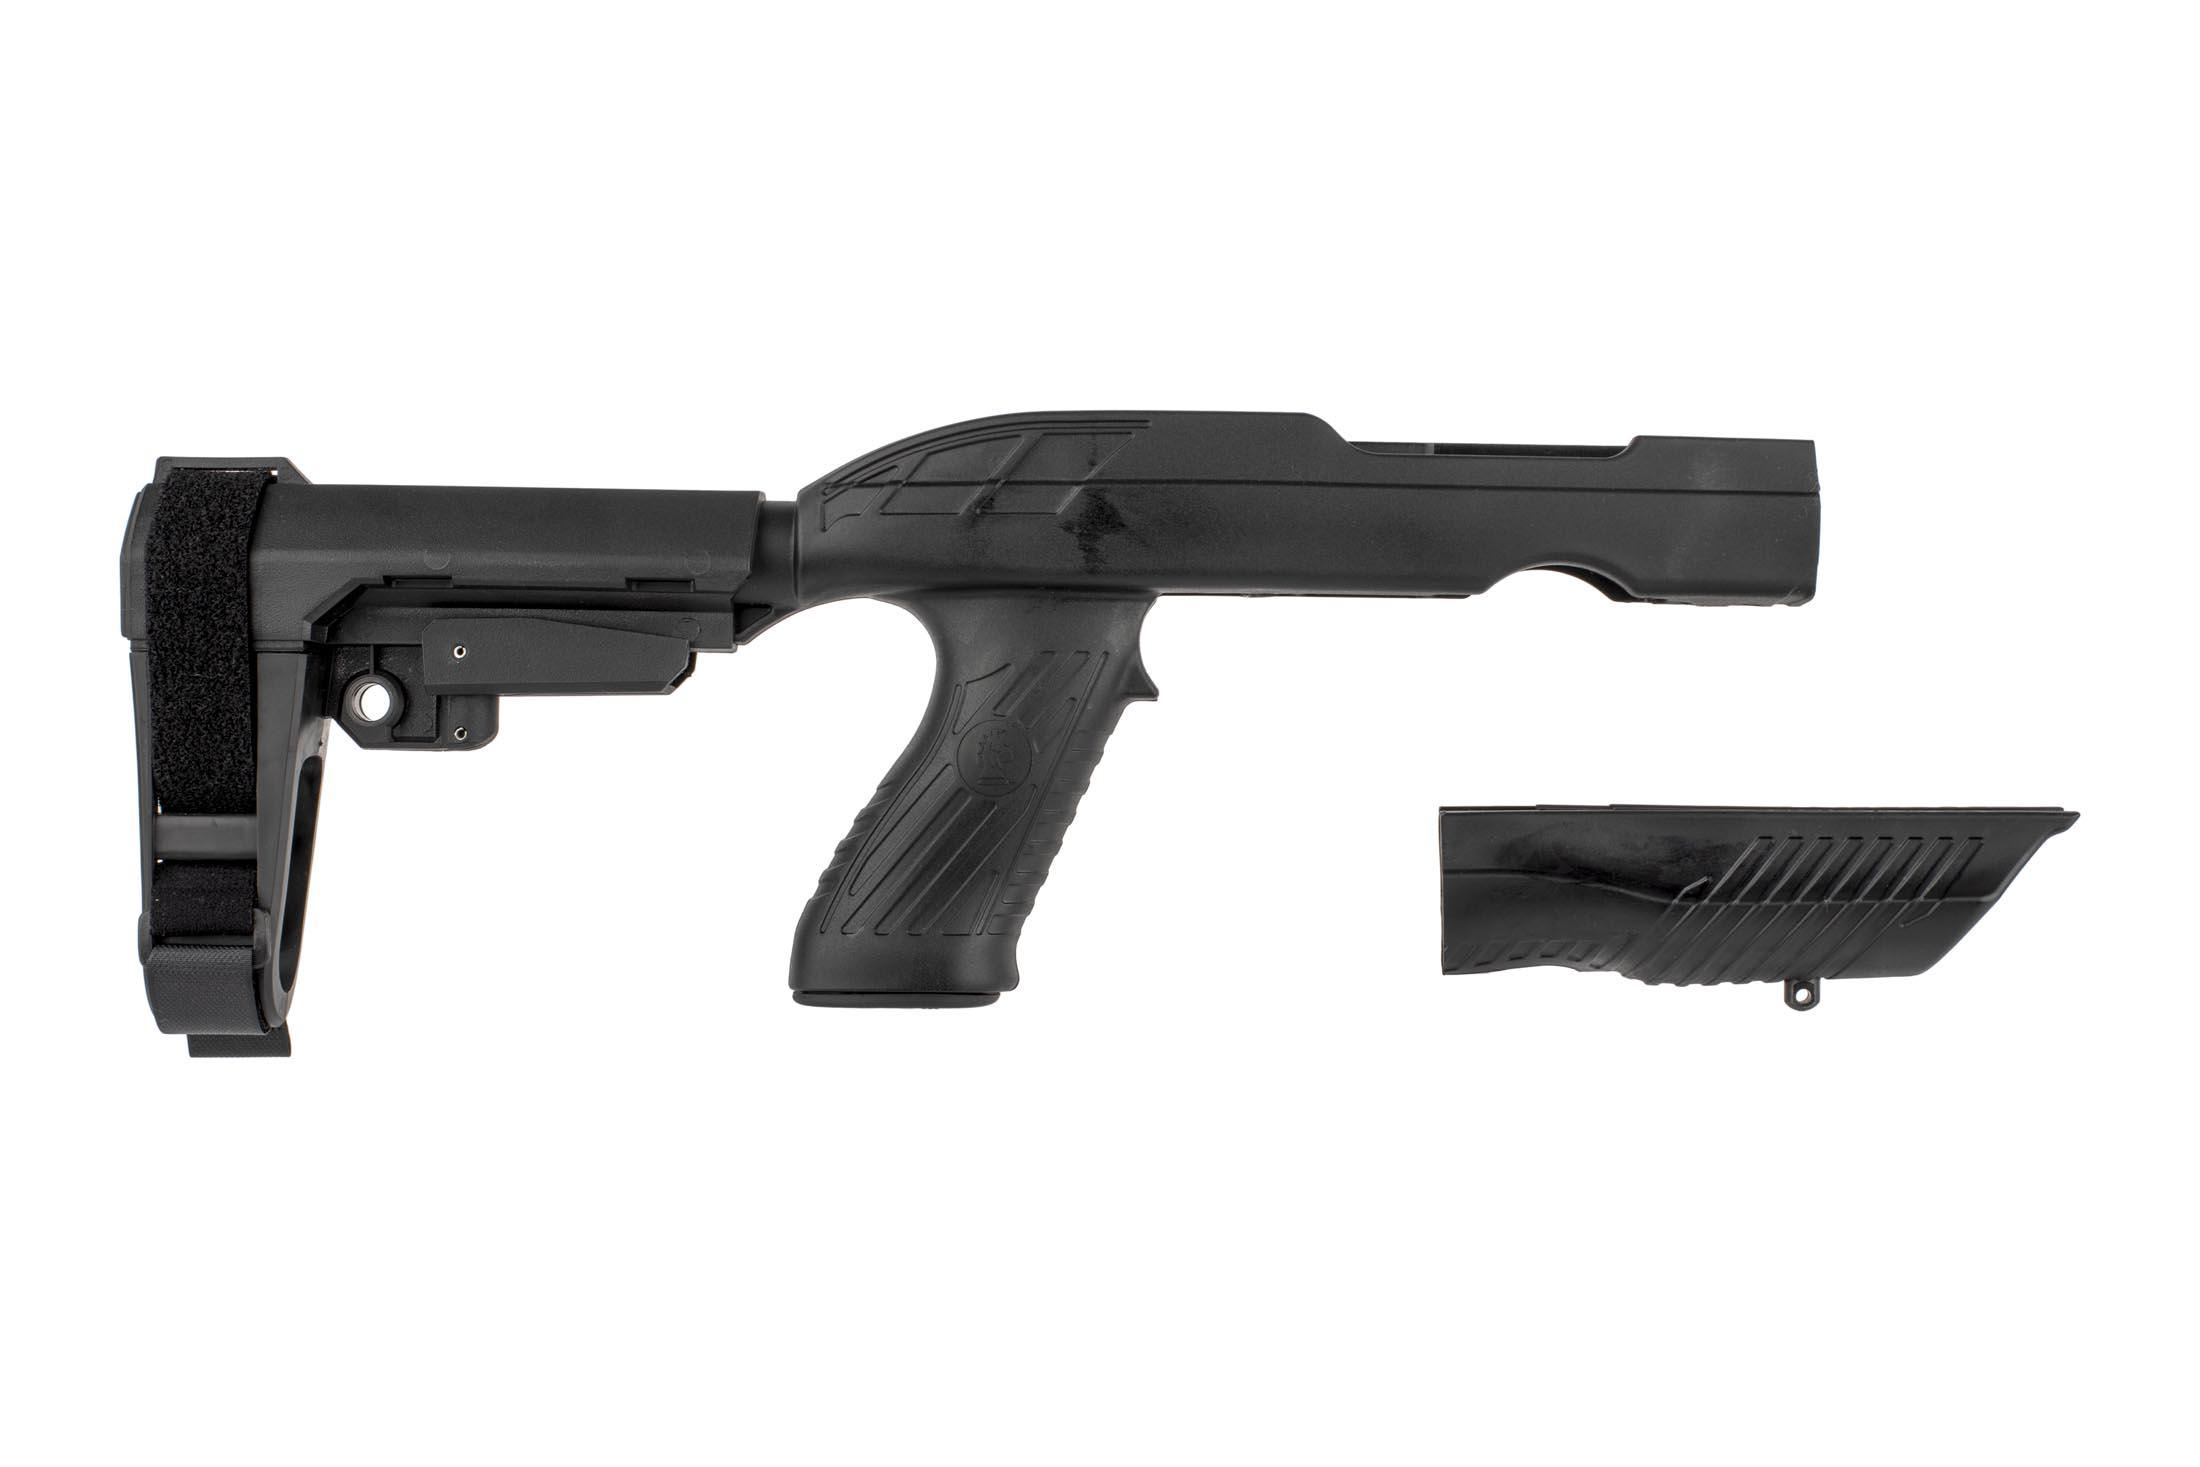 The SB Tactical Ruger 1022 charger take down SBA3 stabilizing brace kit comes with a polymer fore end